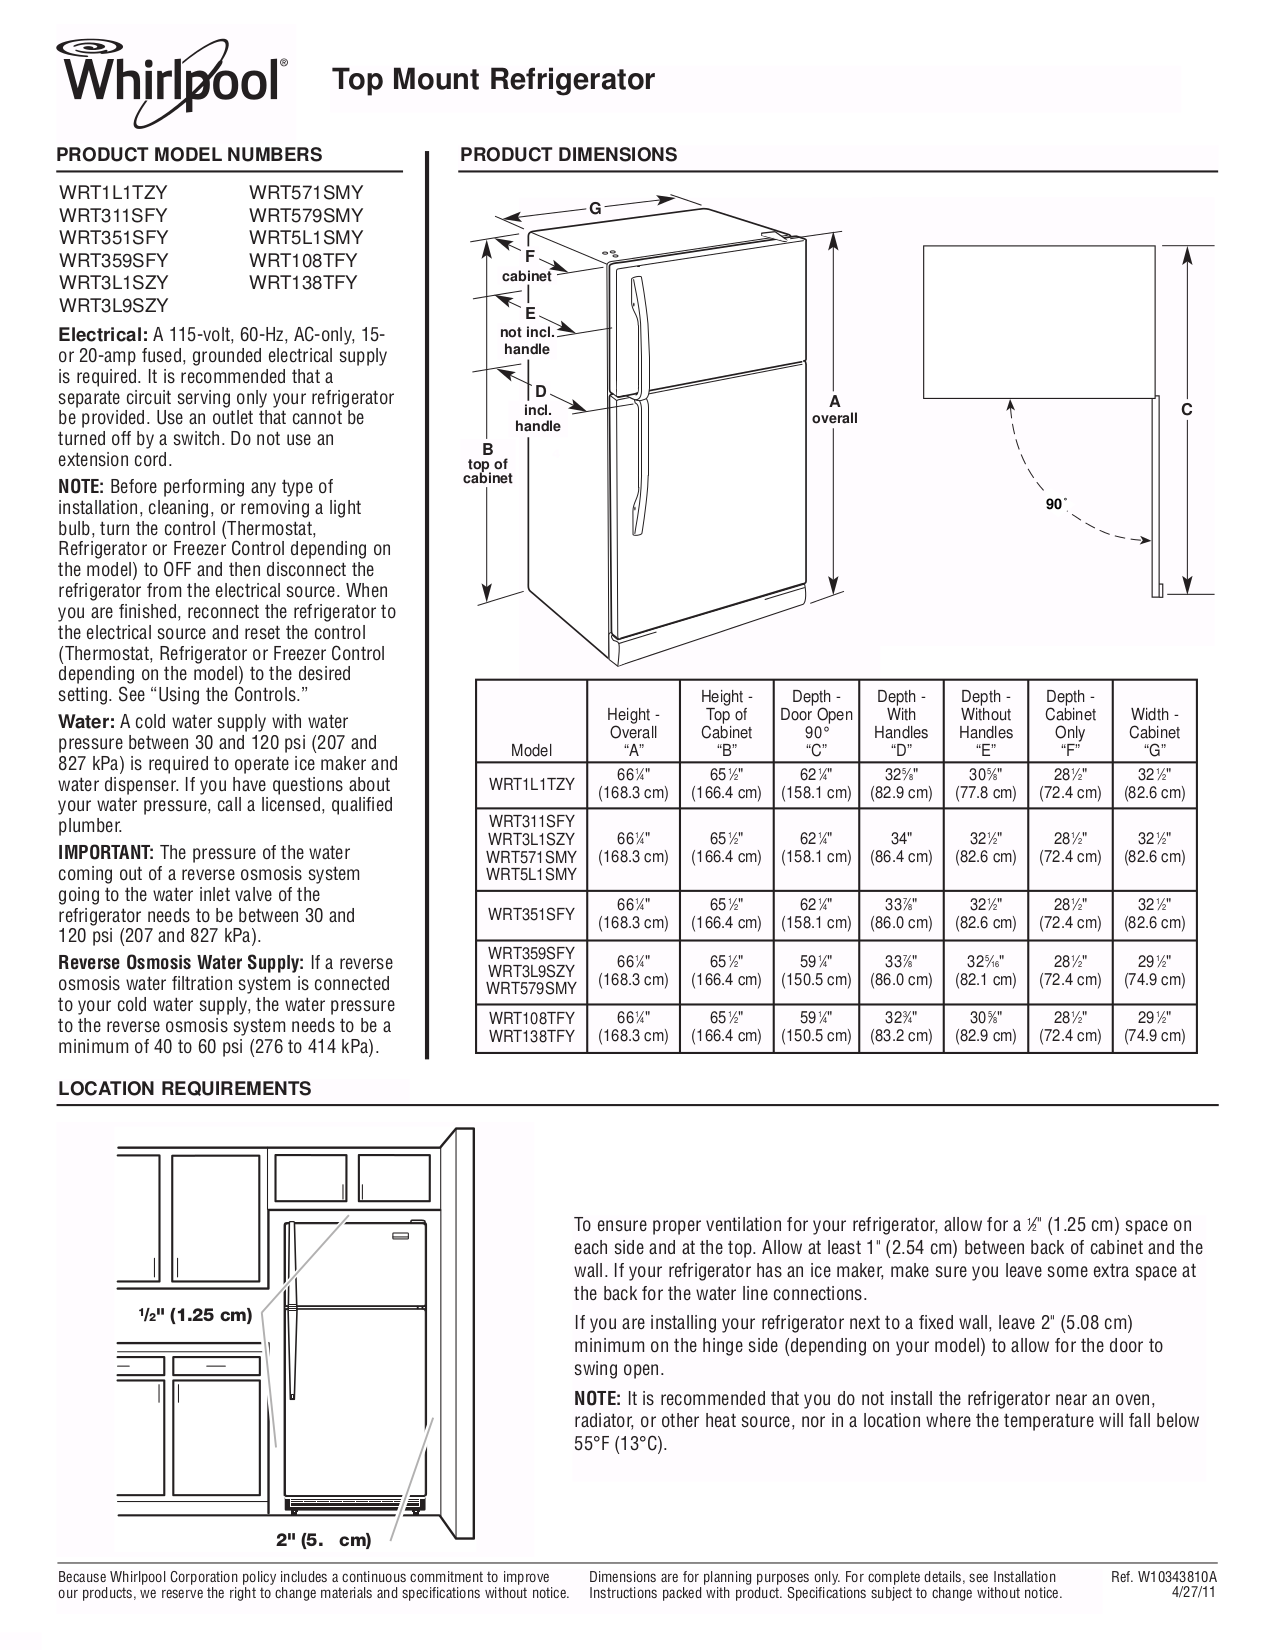 whirlpool refrigerator installation guide free download